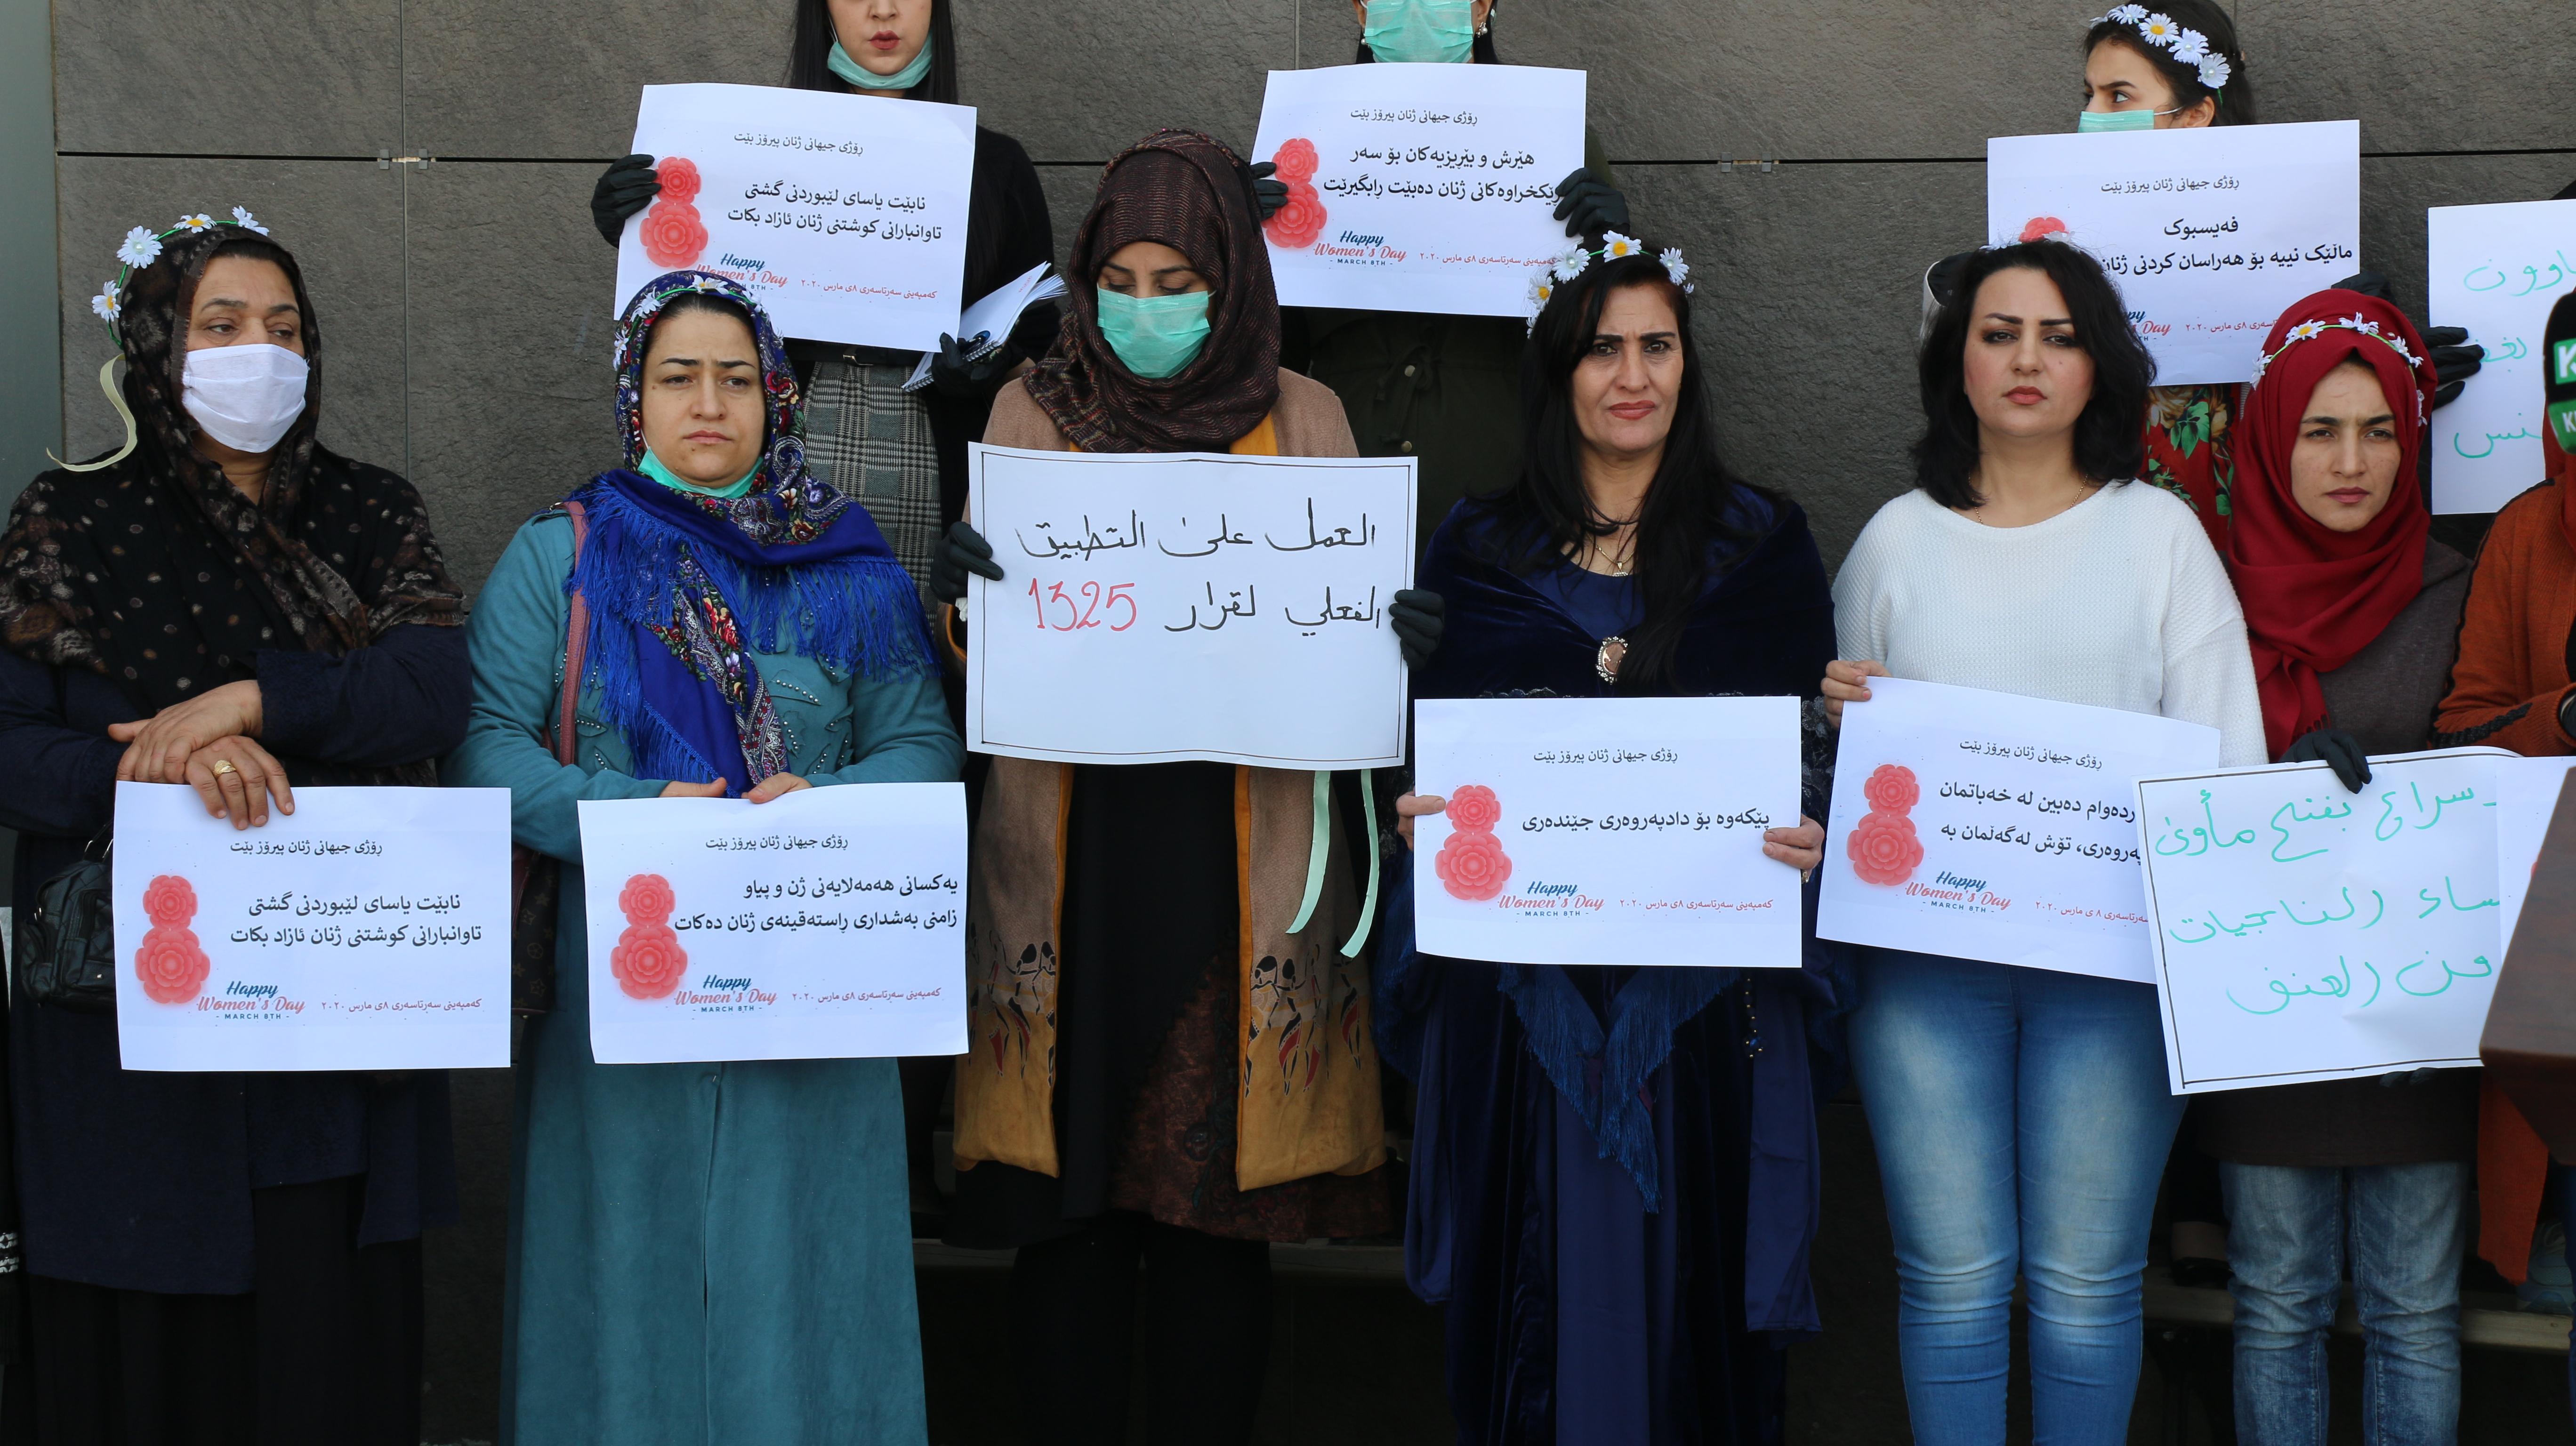 Kirkuk 2020 - Women demand the end of violence against them - Picture by KirkukNow